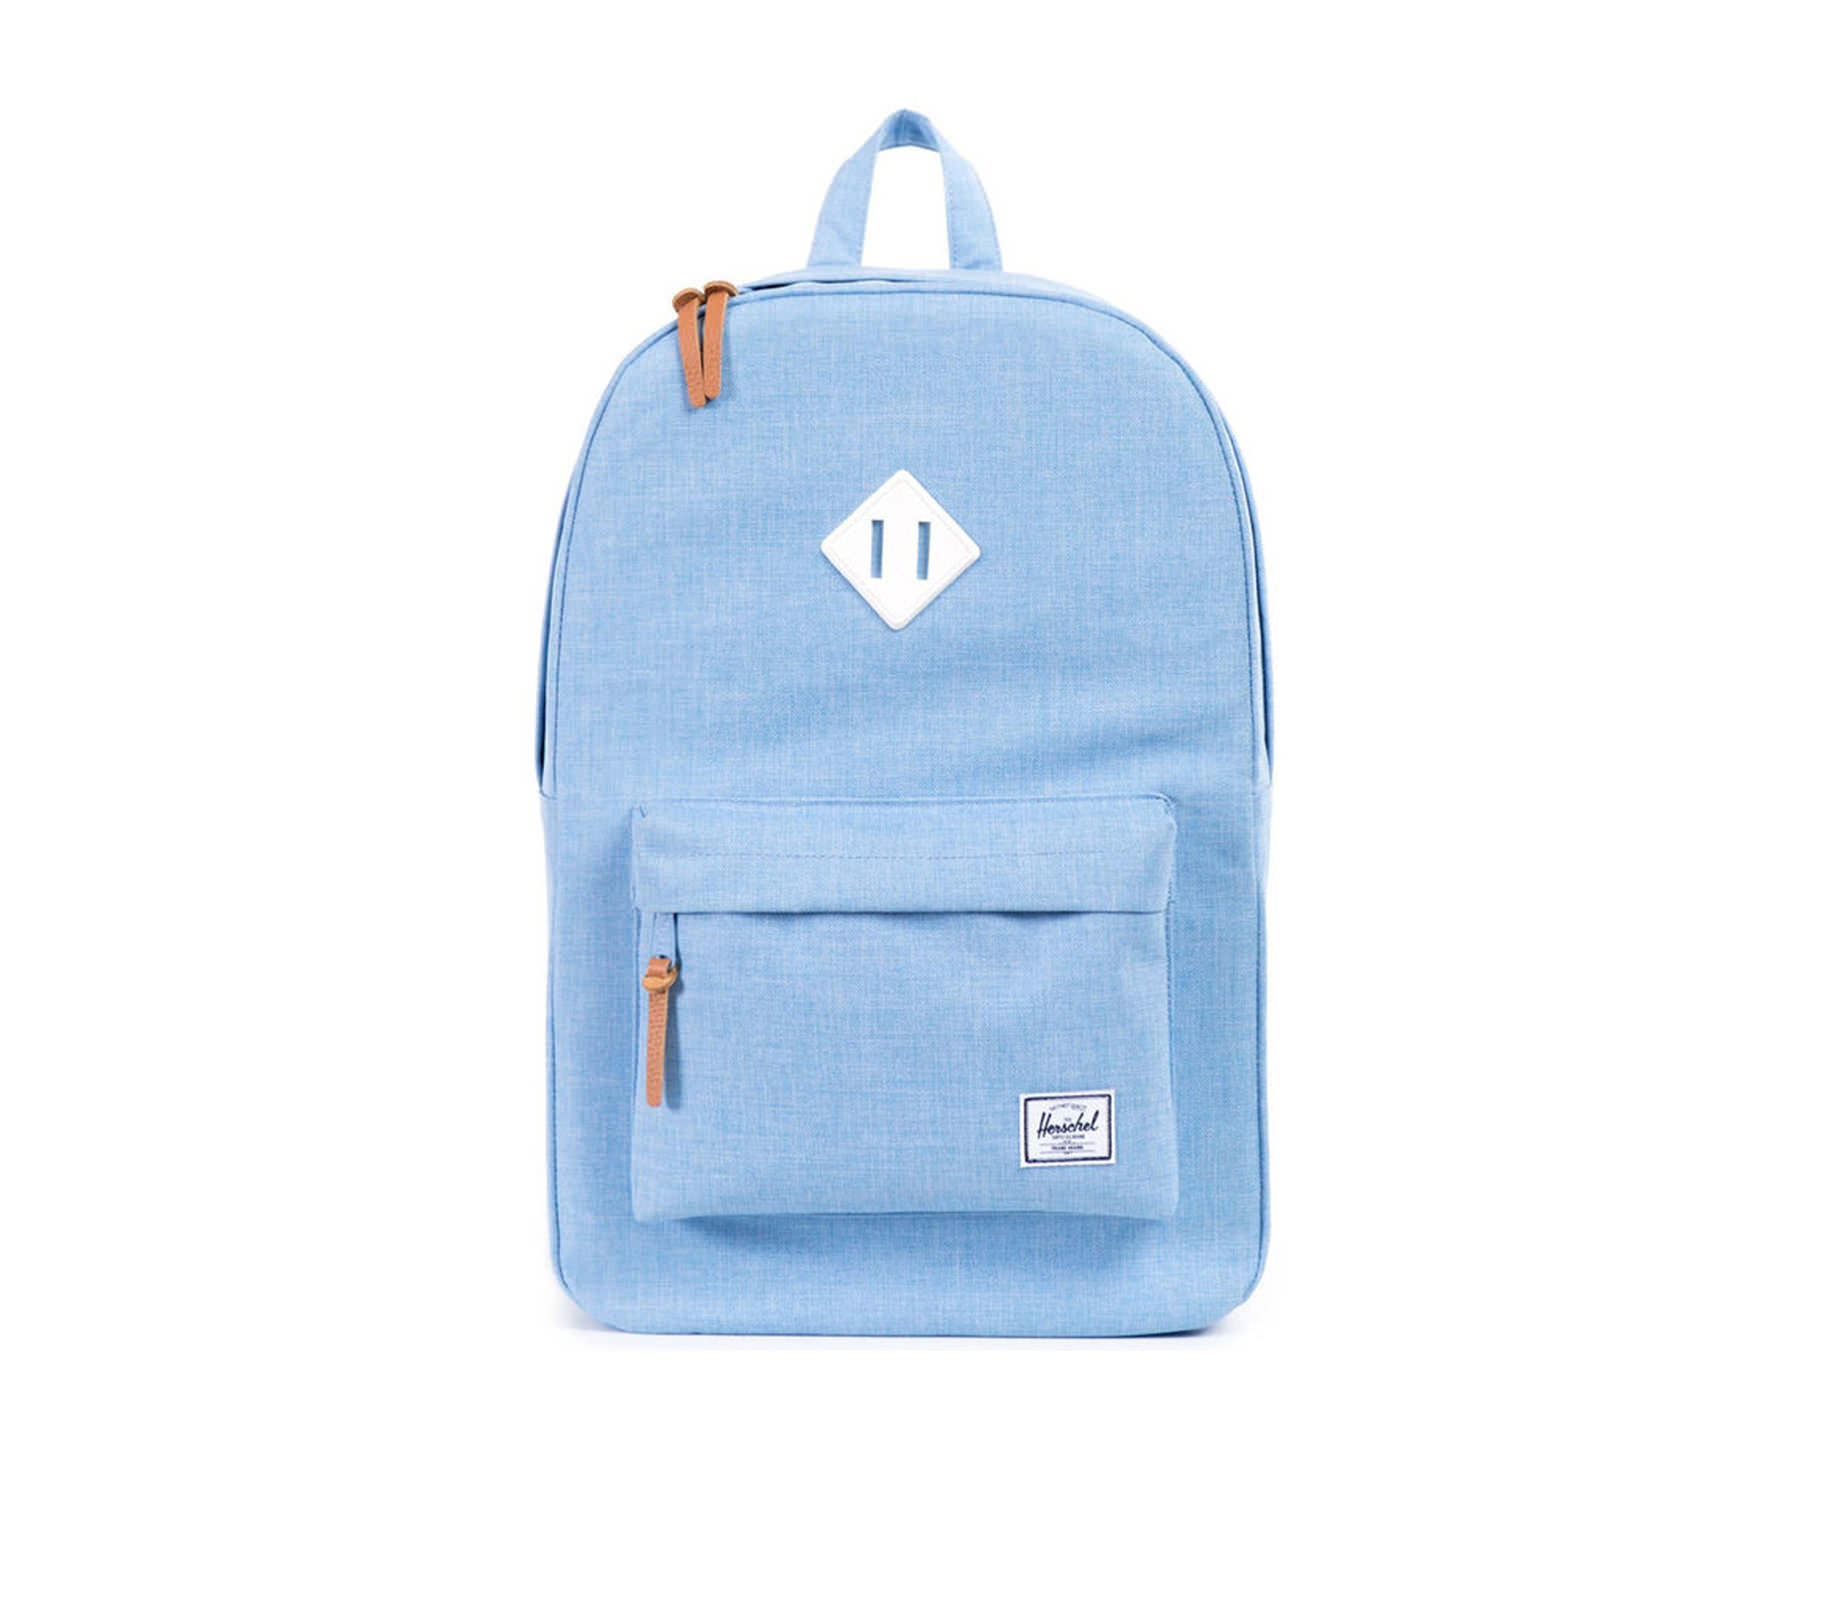 Balo du lịch HERSCHEL Heritage Shallow Sea Rubber